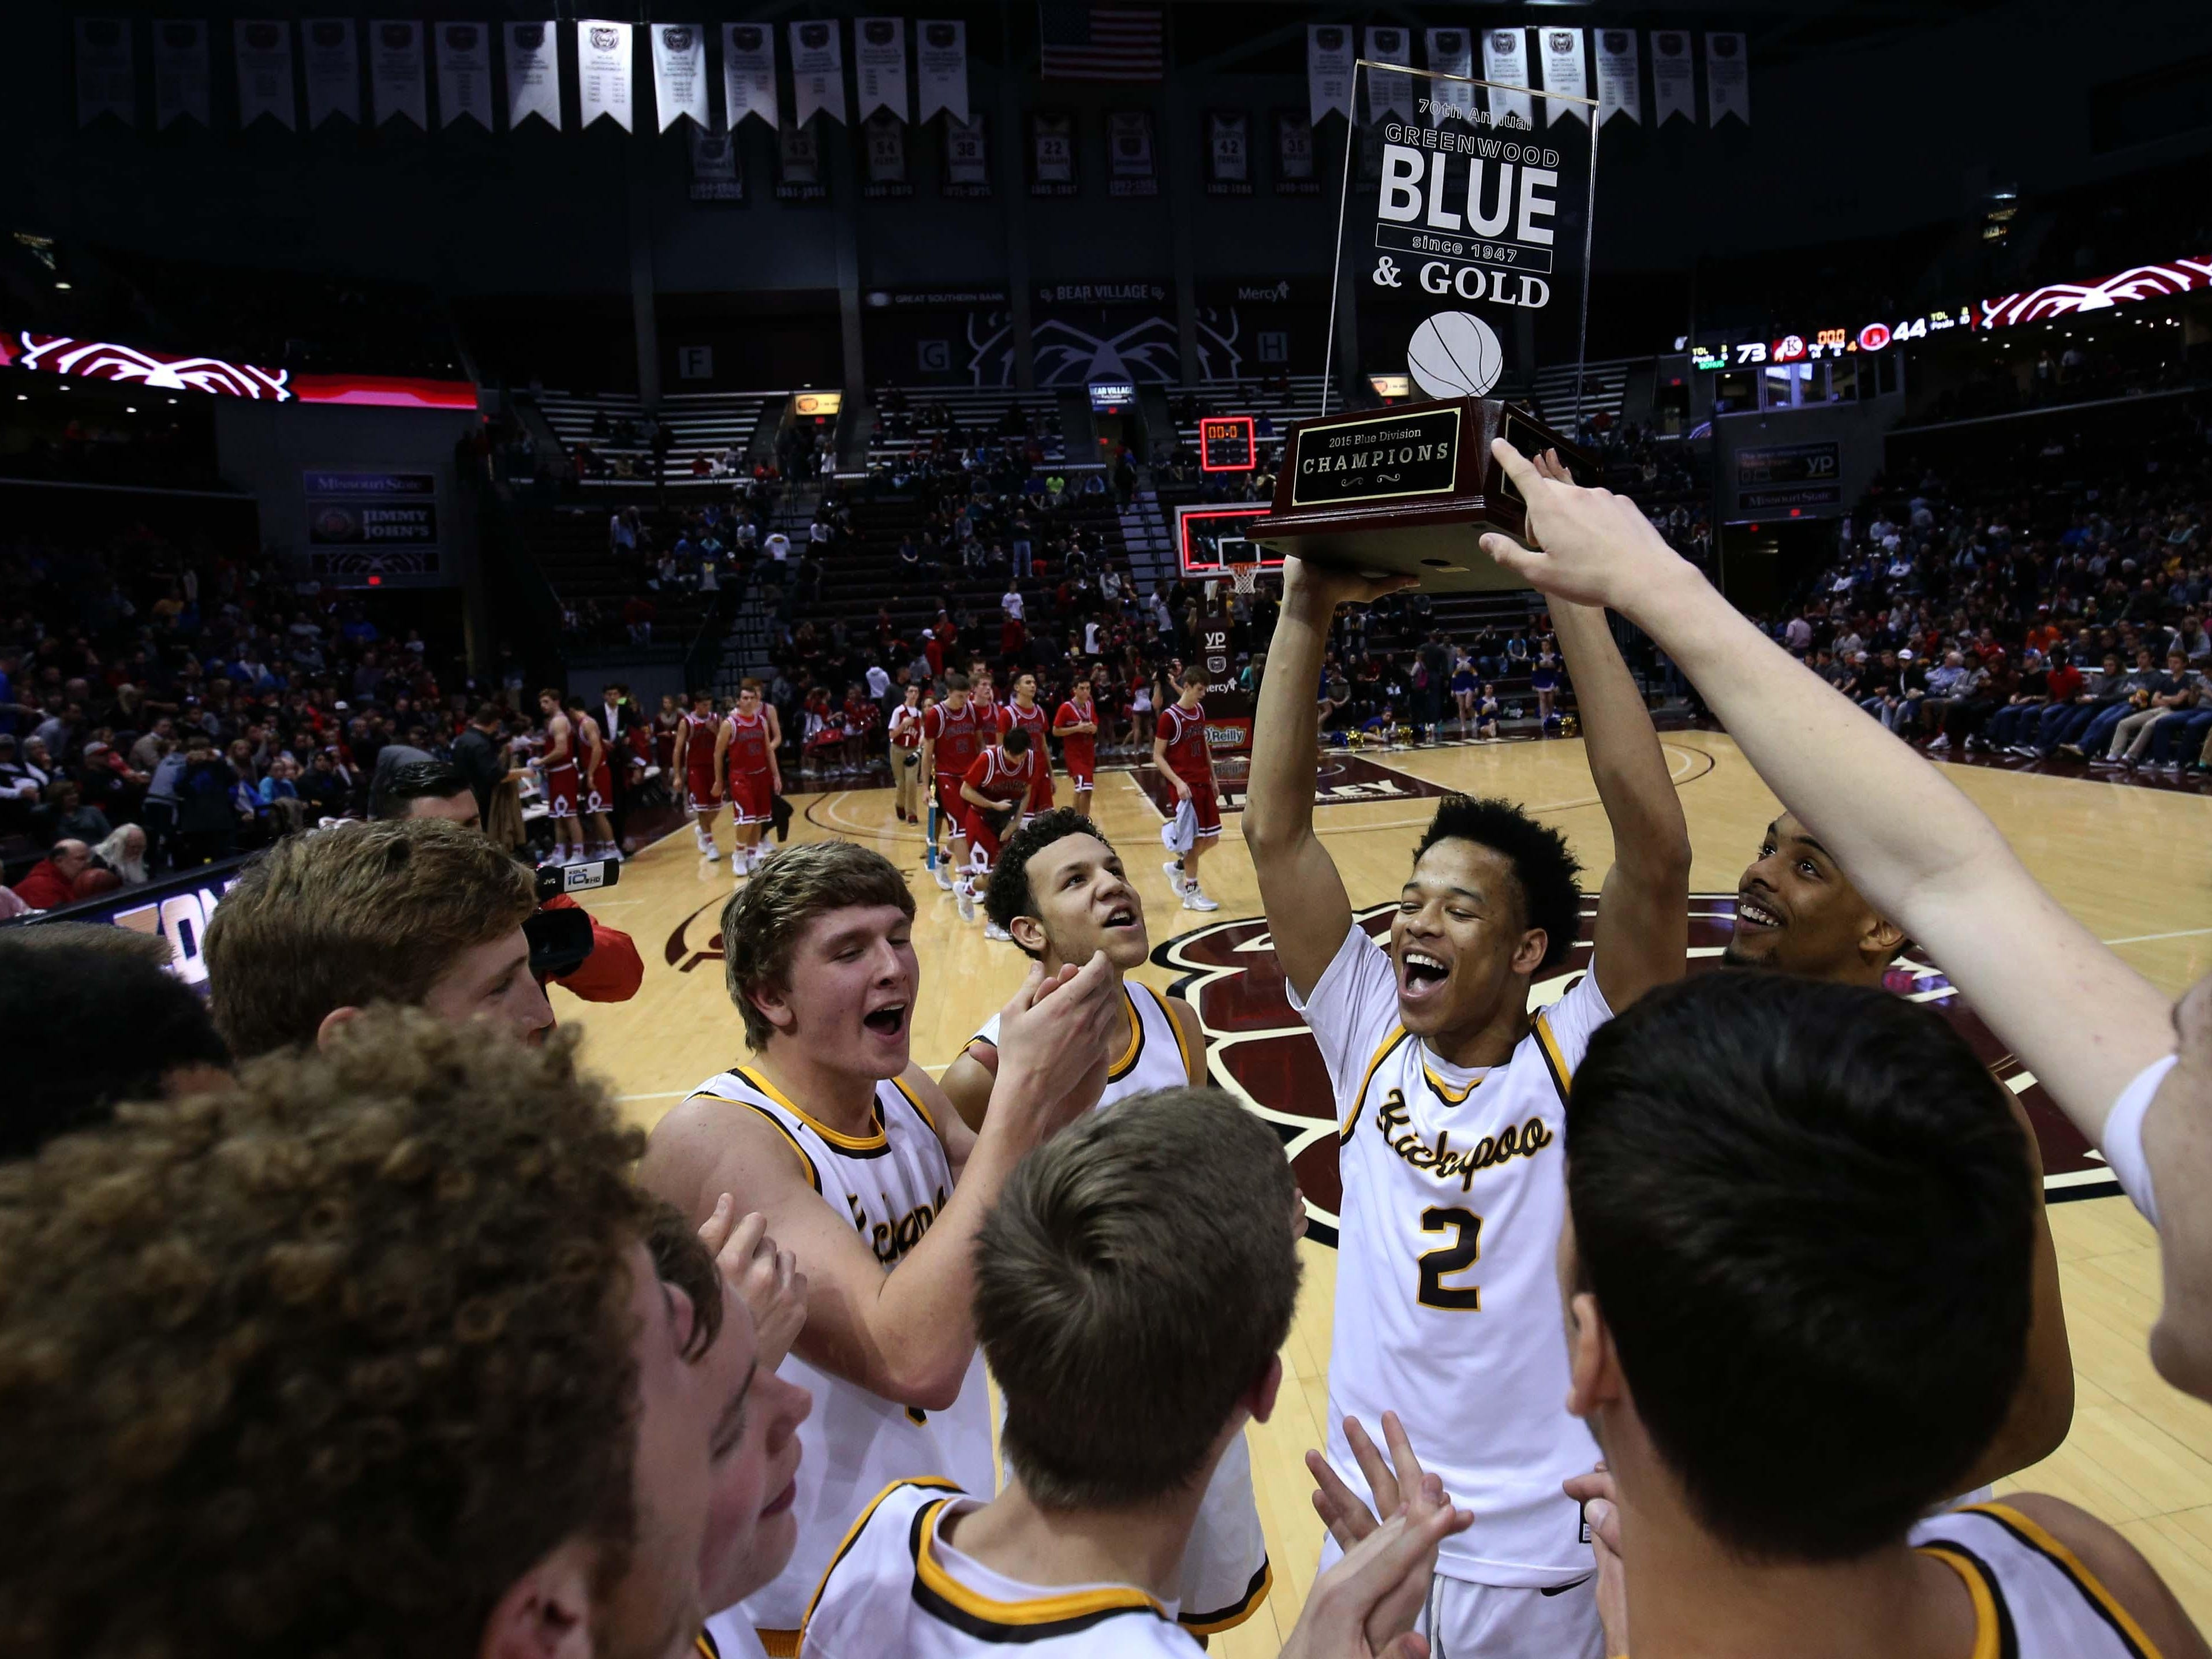 Kickapoo's Derrick Roberson hoists the championship trophy after beating Ozark in the Blue Division Final at JQH Arena on Wednesday night.